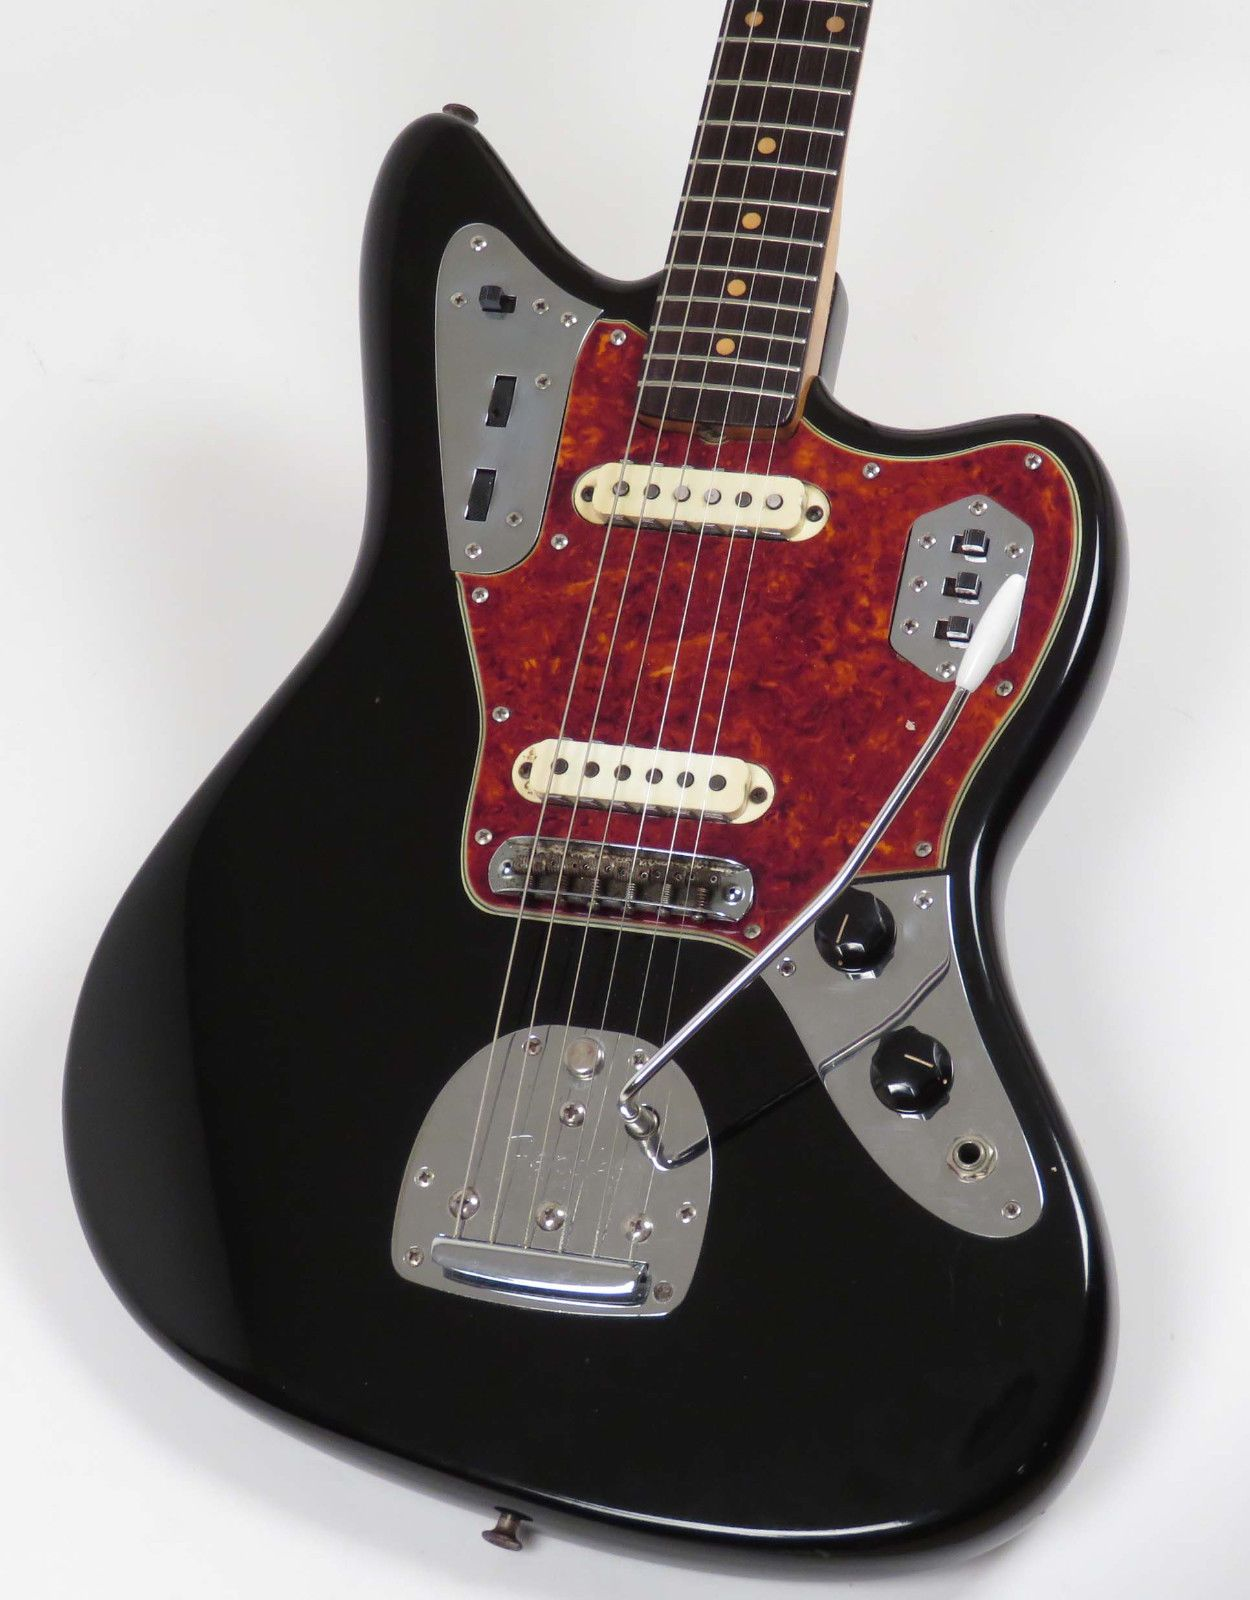 strings guitars and for guitar basses named shorter thinner was were the than suspects fen wht this jazz of precision unusual bass vi jaguar fender sale much scale blog unique